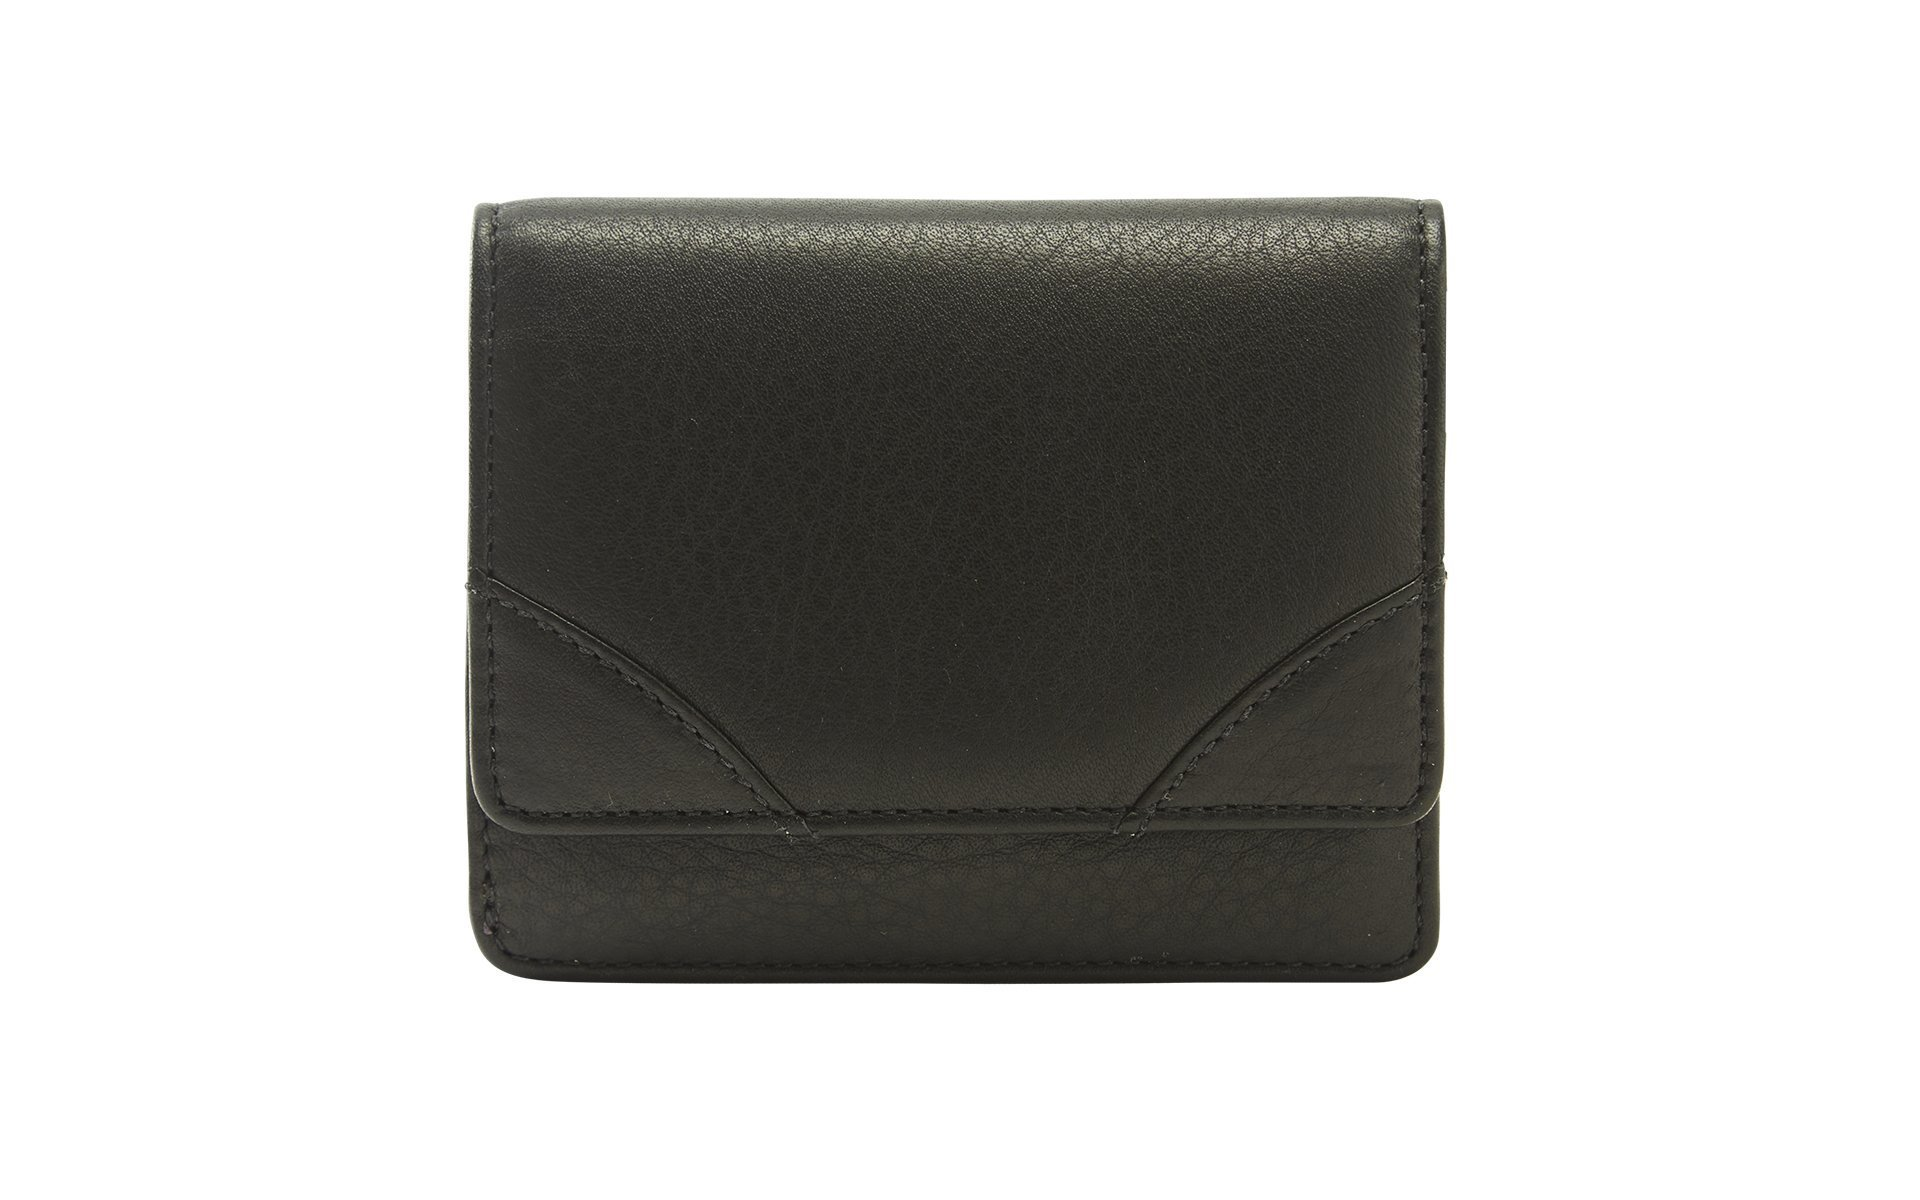 Tusk Donington Gold French Gusseted Wallet CD-435 Wallet,Black,One Size